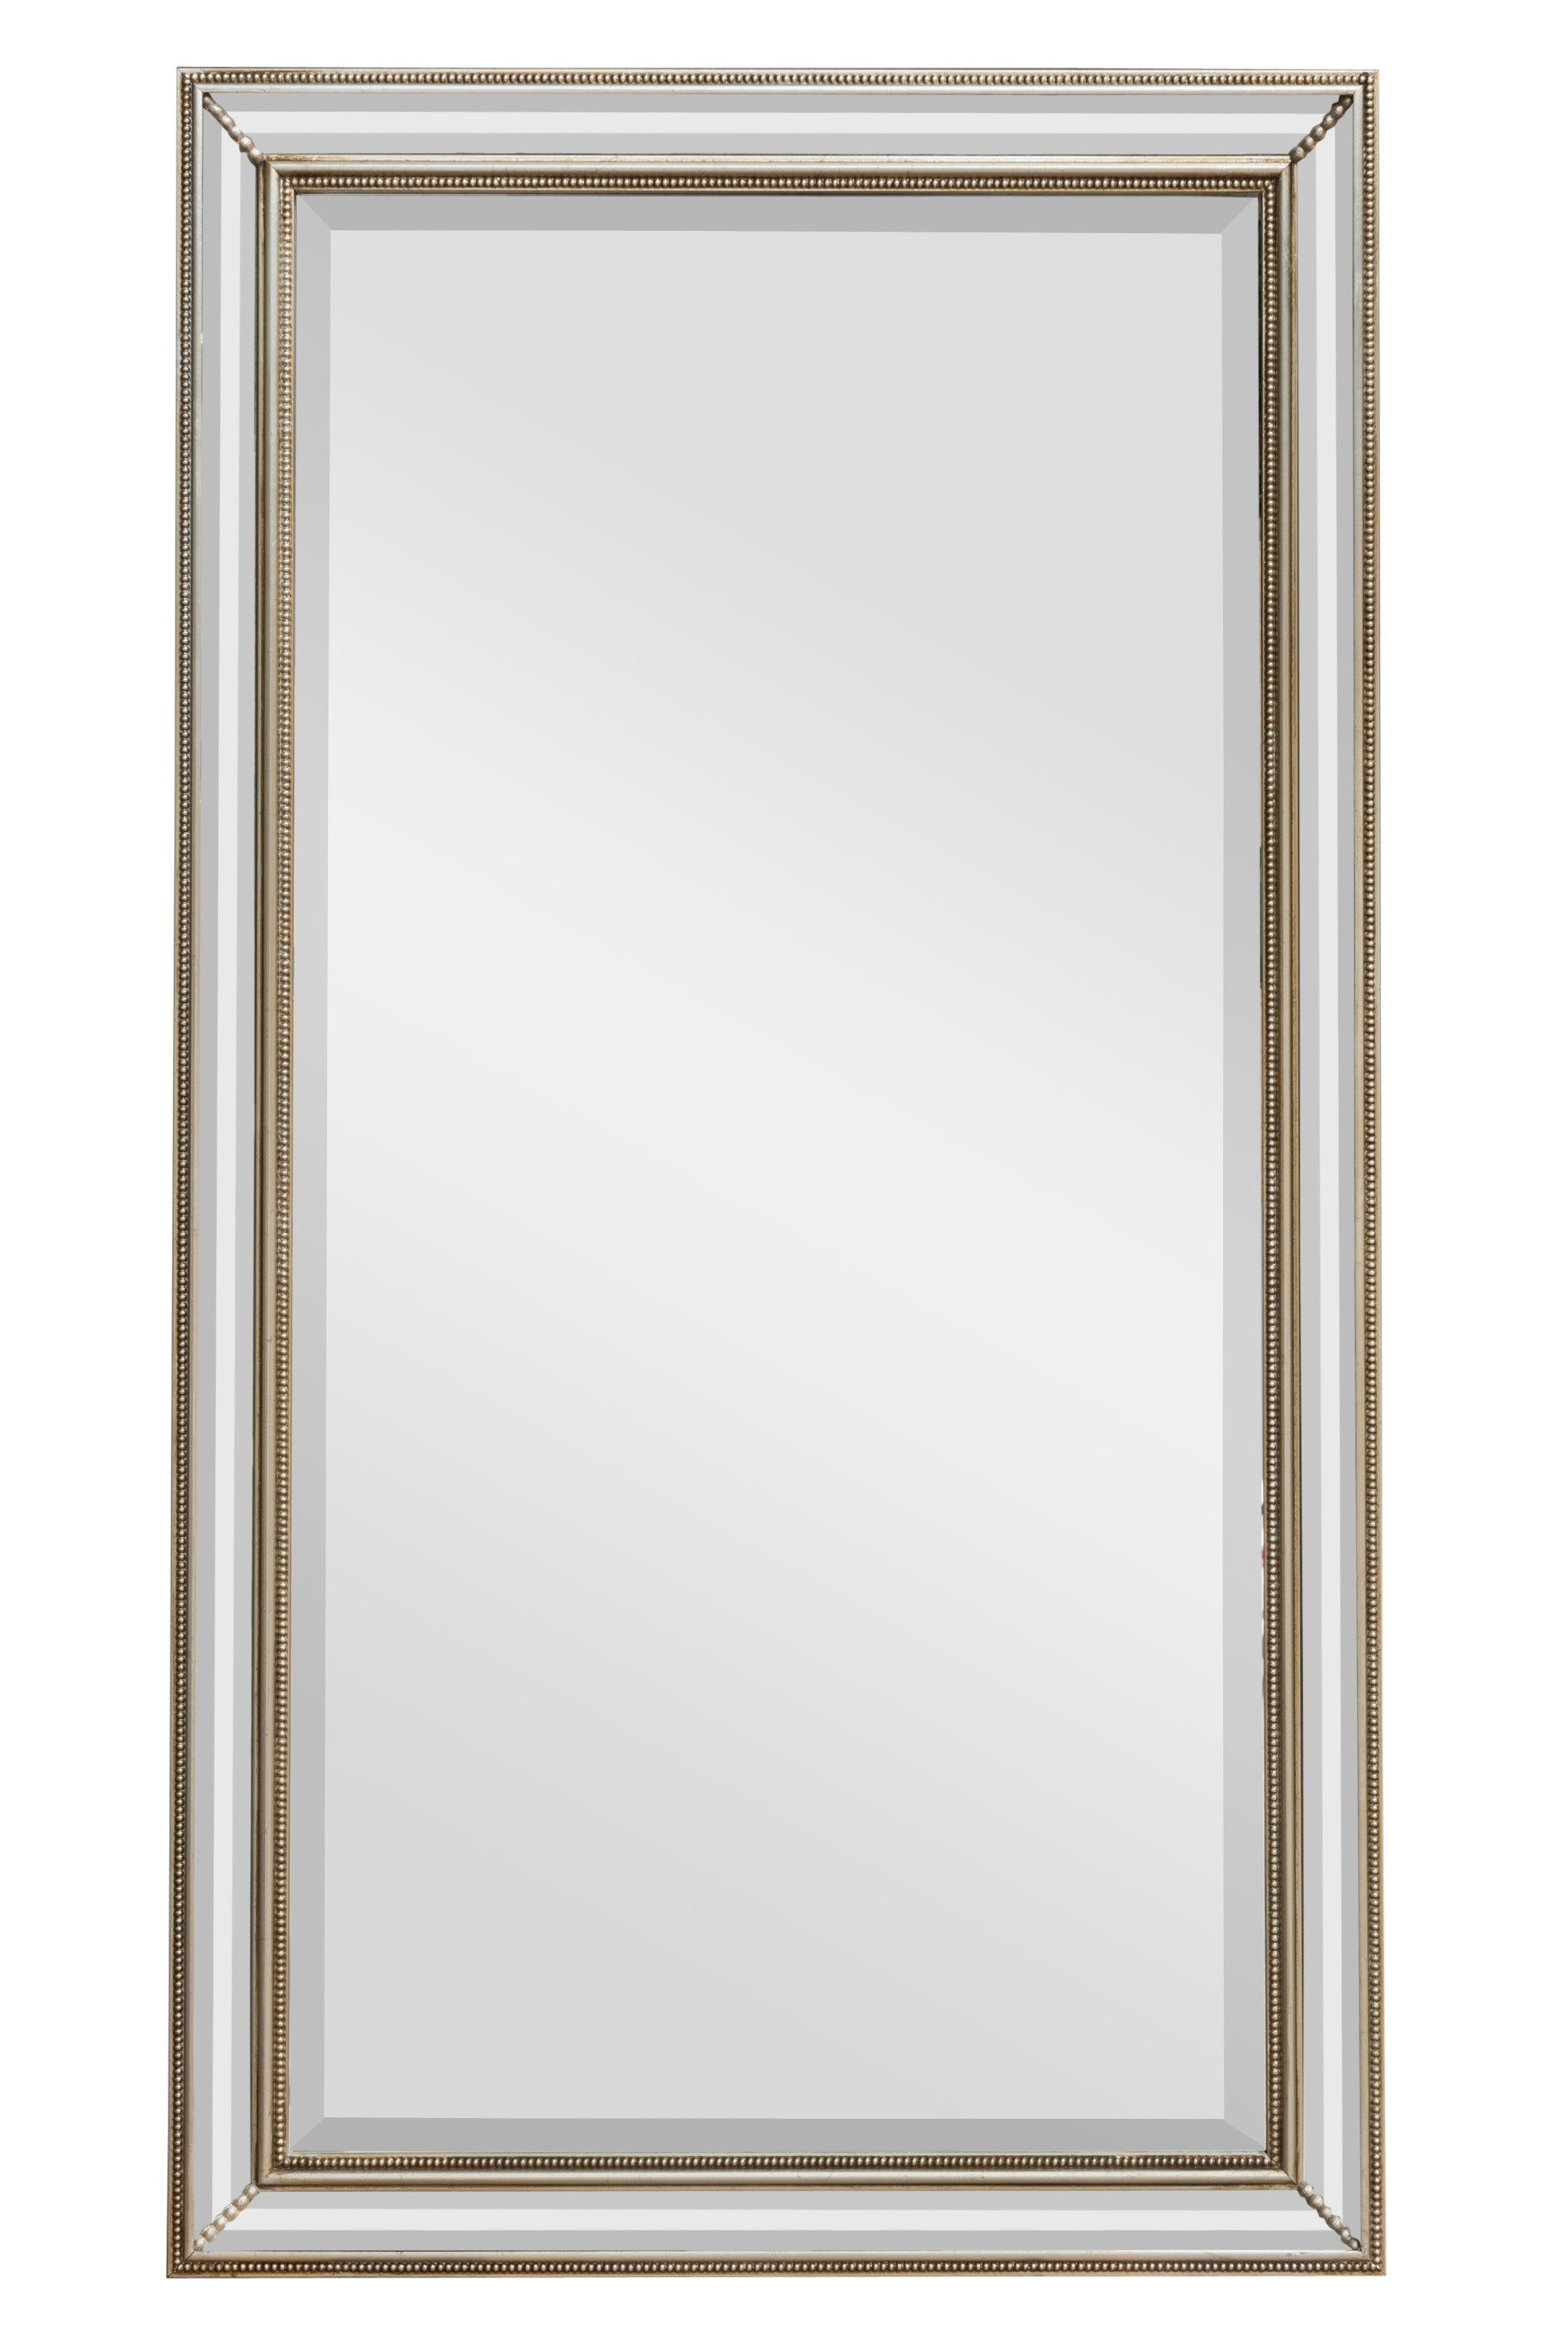 Beaded Cushion Mirror Bedroom Mirrors For Sale Panfili Mirrors In Double Bevelled Mirror (Image 1 of 15)